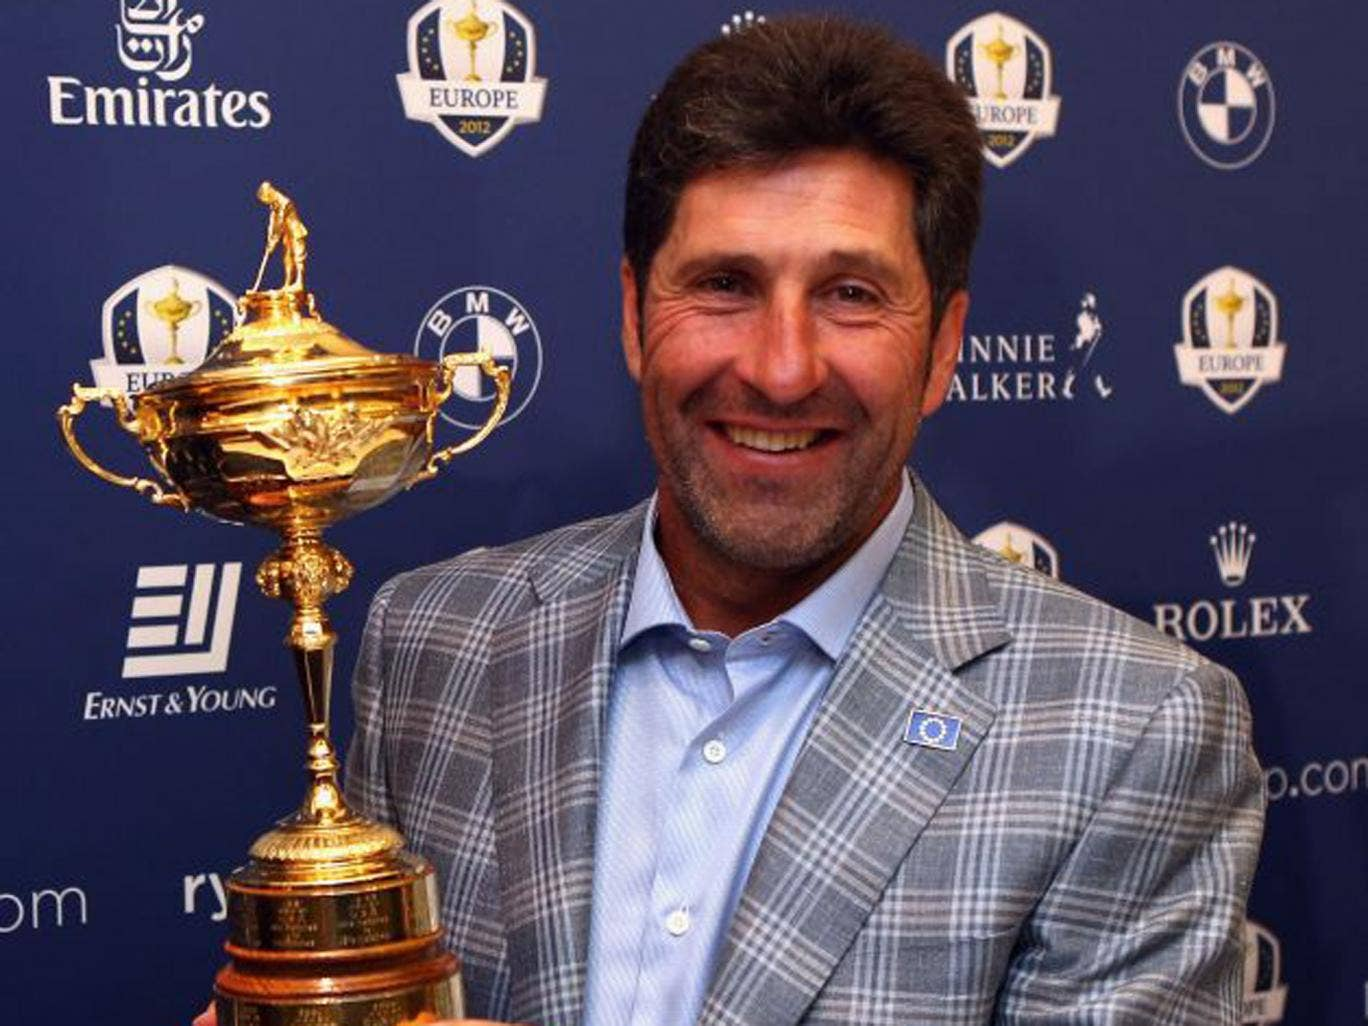 'This was it. The moment that would decide the Ryder Cup. A 10-footer for glory ... Get in!'